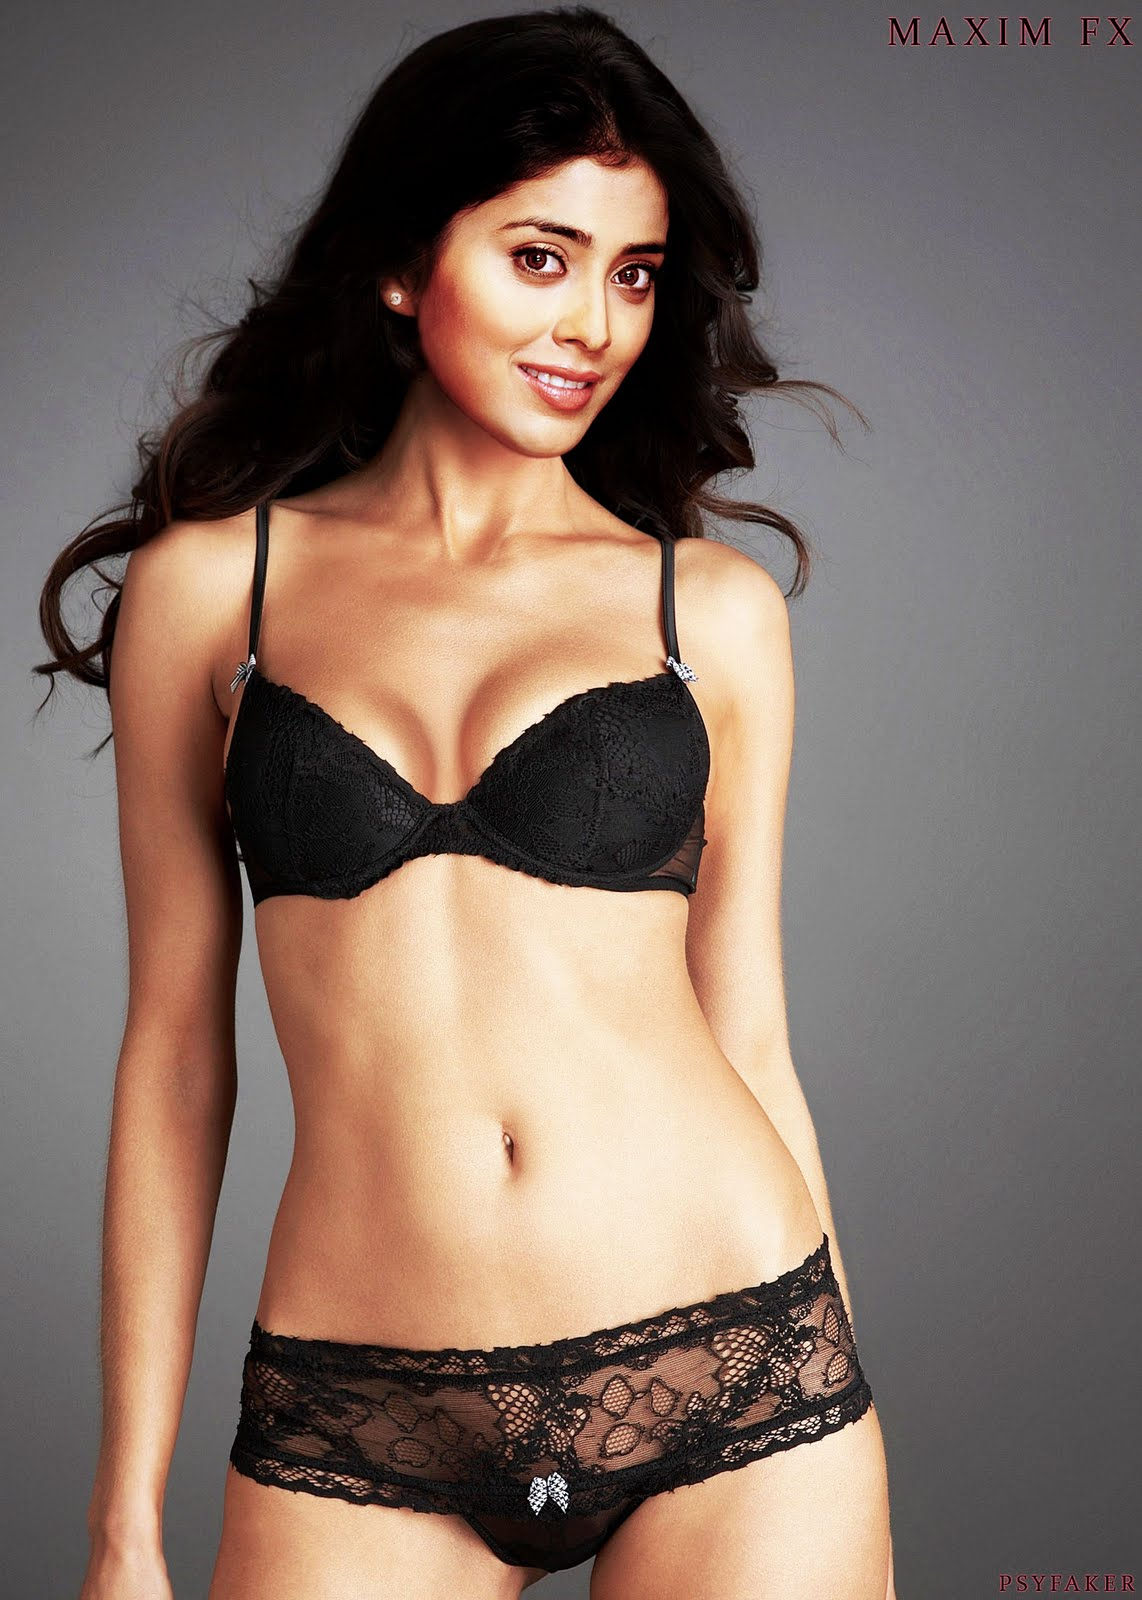 Check Out Shriya Saran Bra Panty This Fake Picture Someone